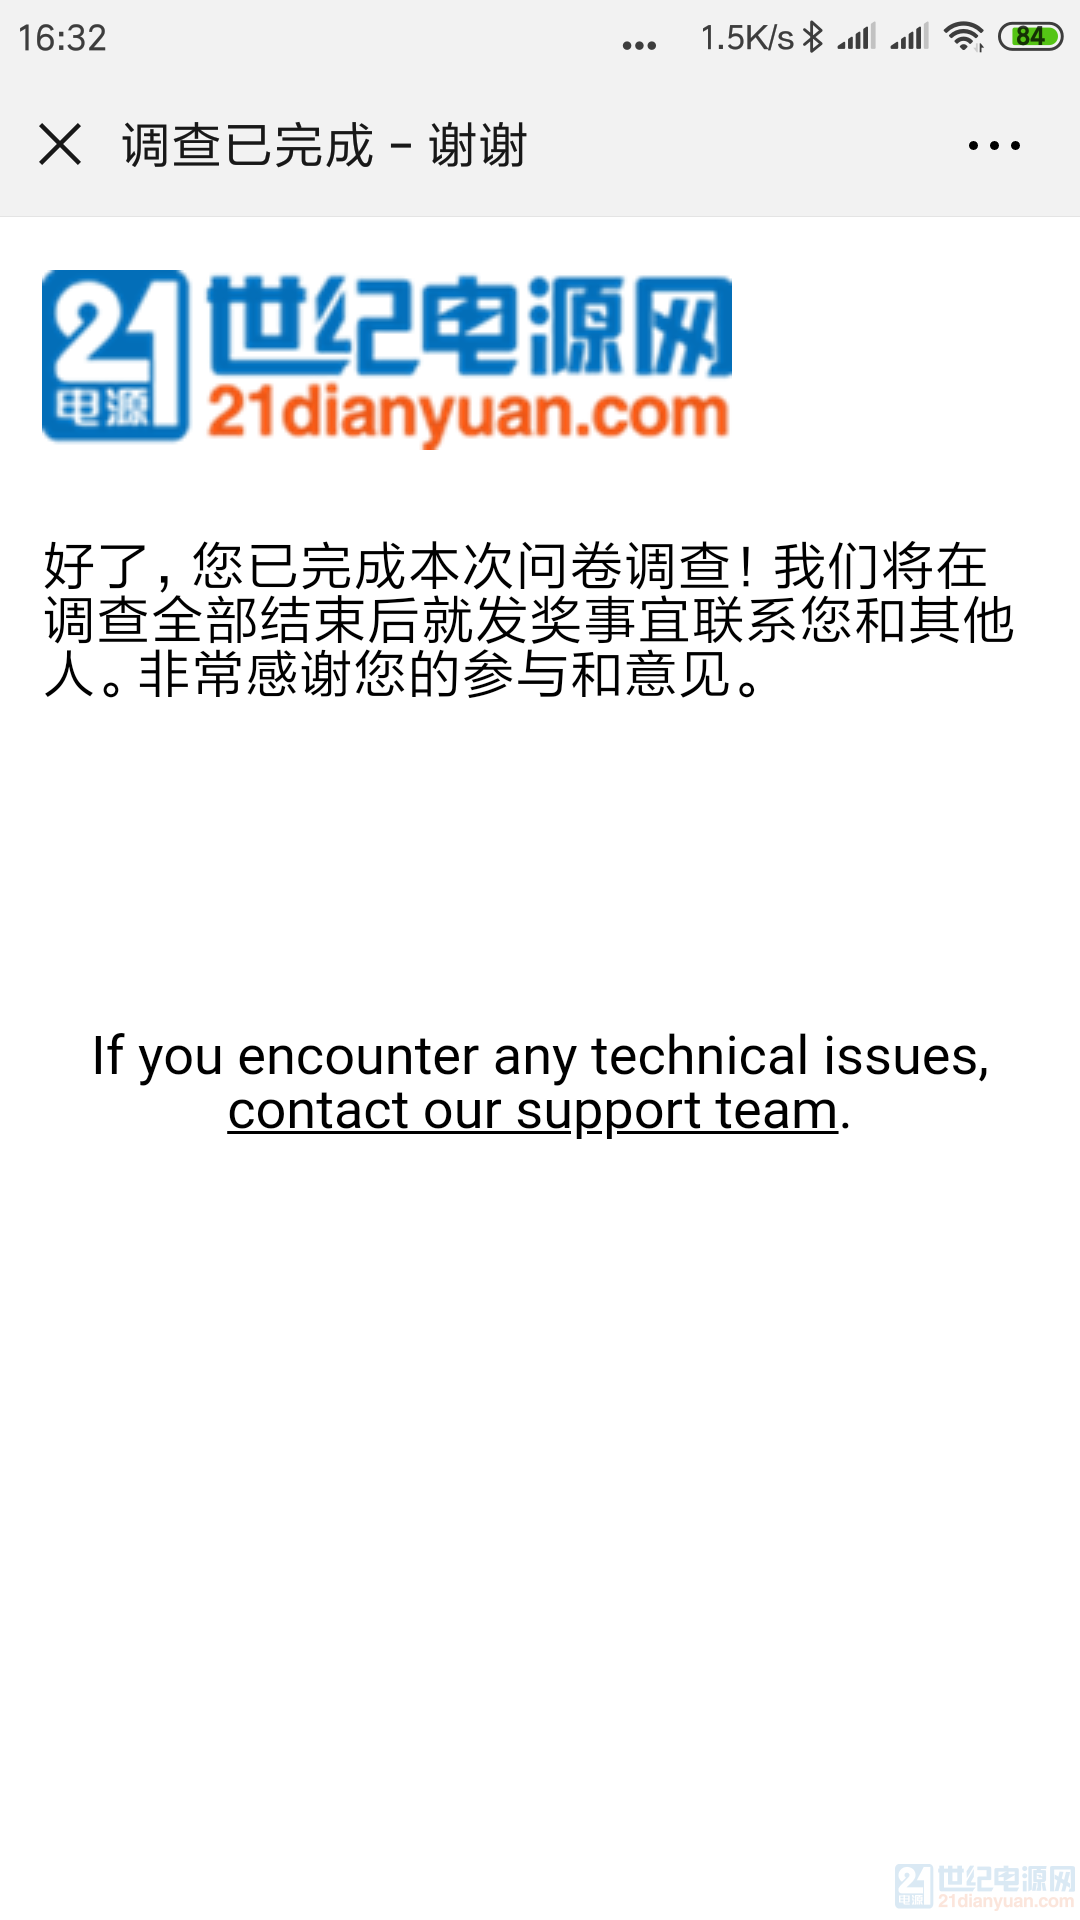 Screenshot_2019-01-25-16-32-26-854_com.tencent.mm.png